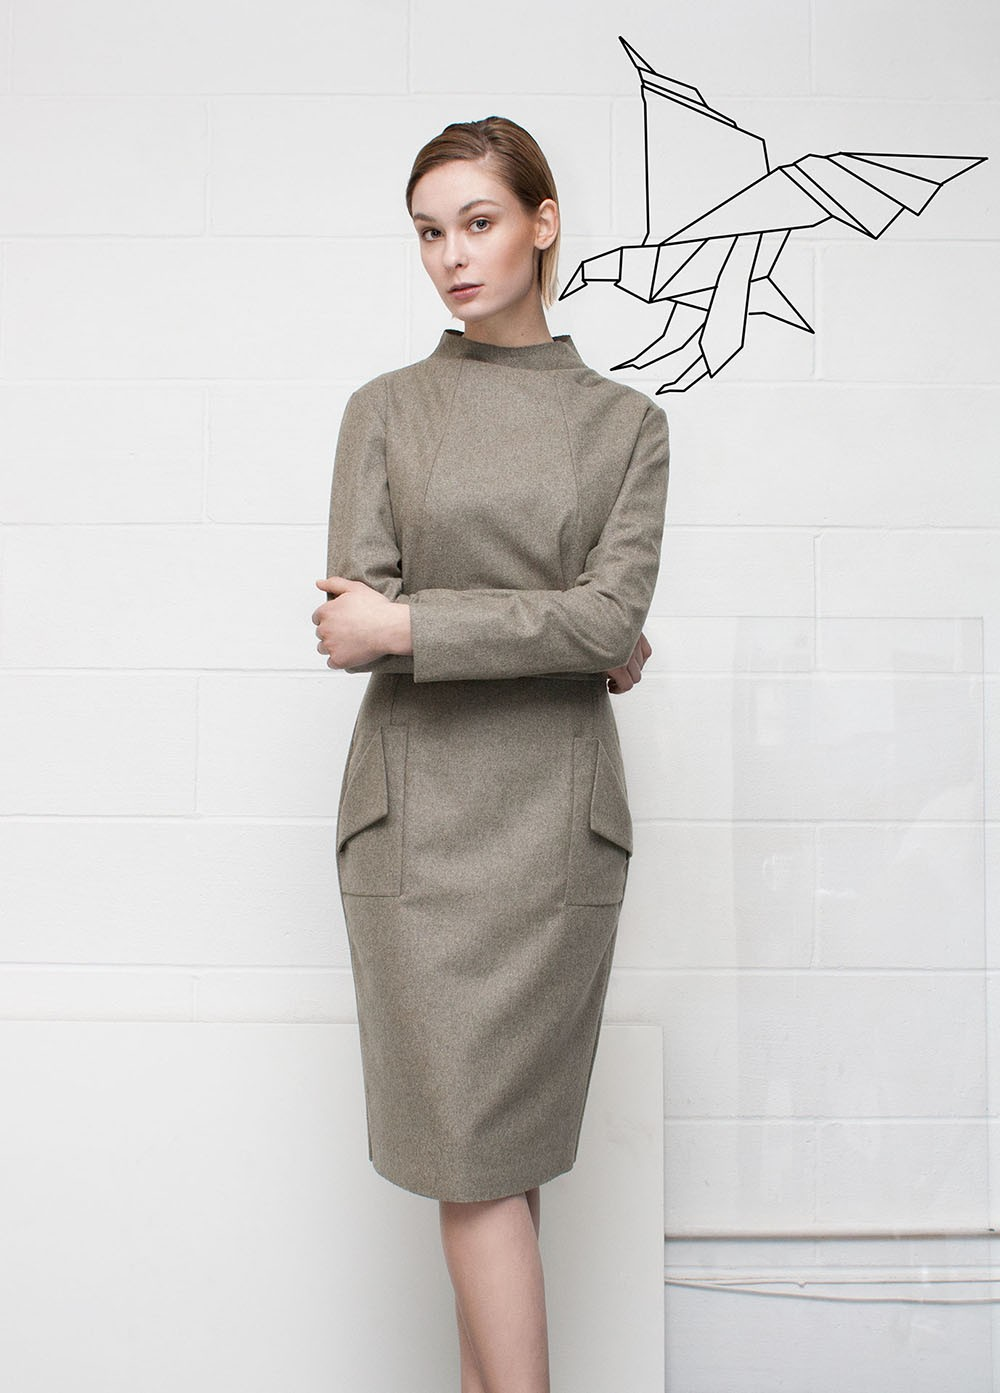 Raw Collar Dress With Folder Pockets | Ache